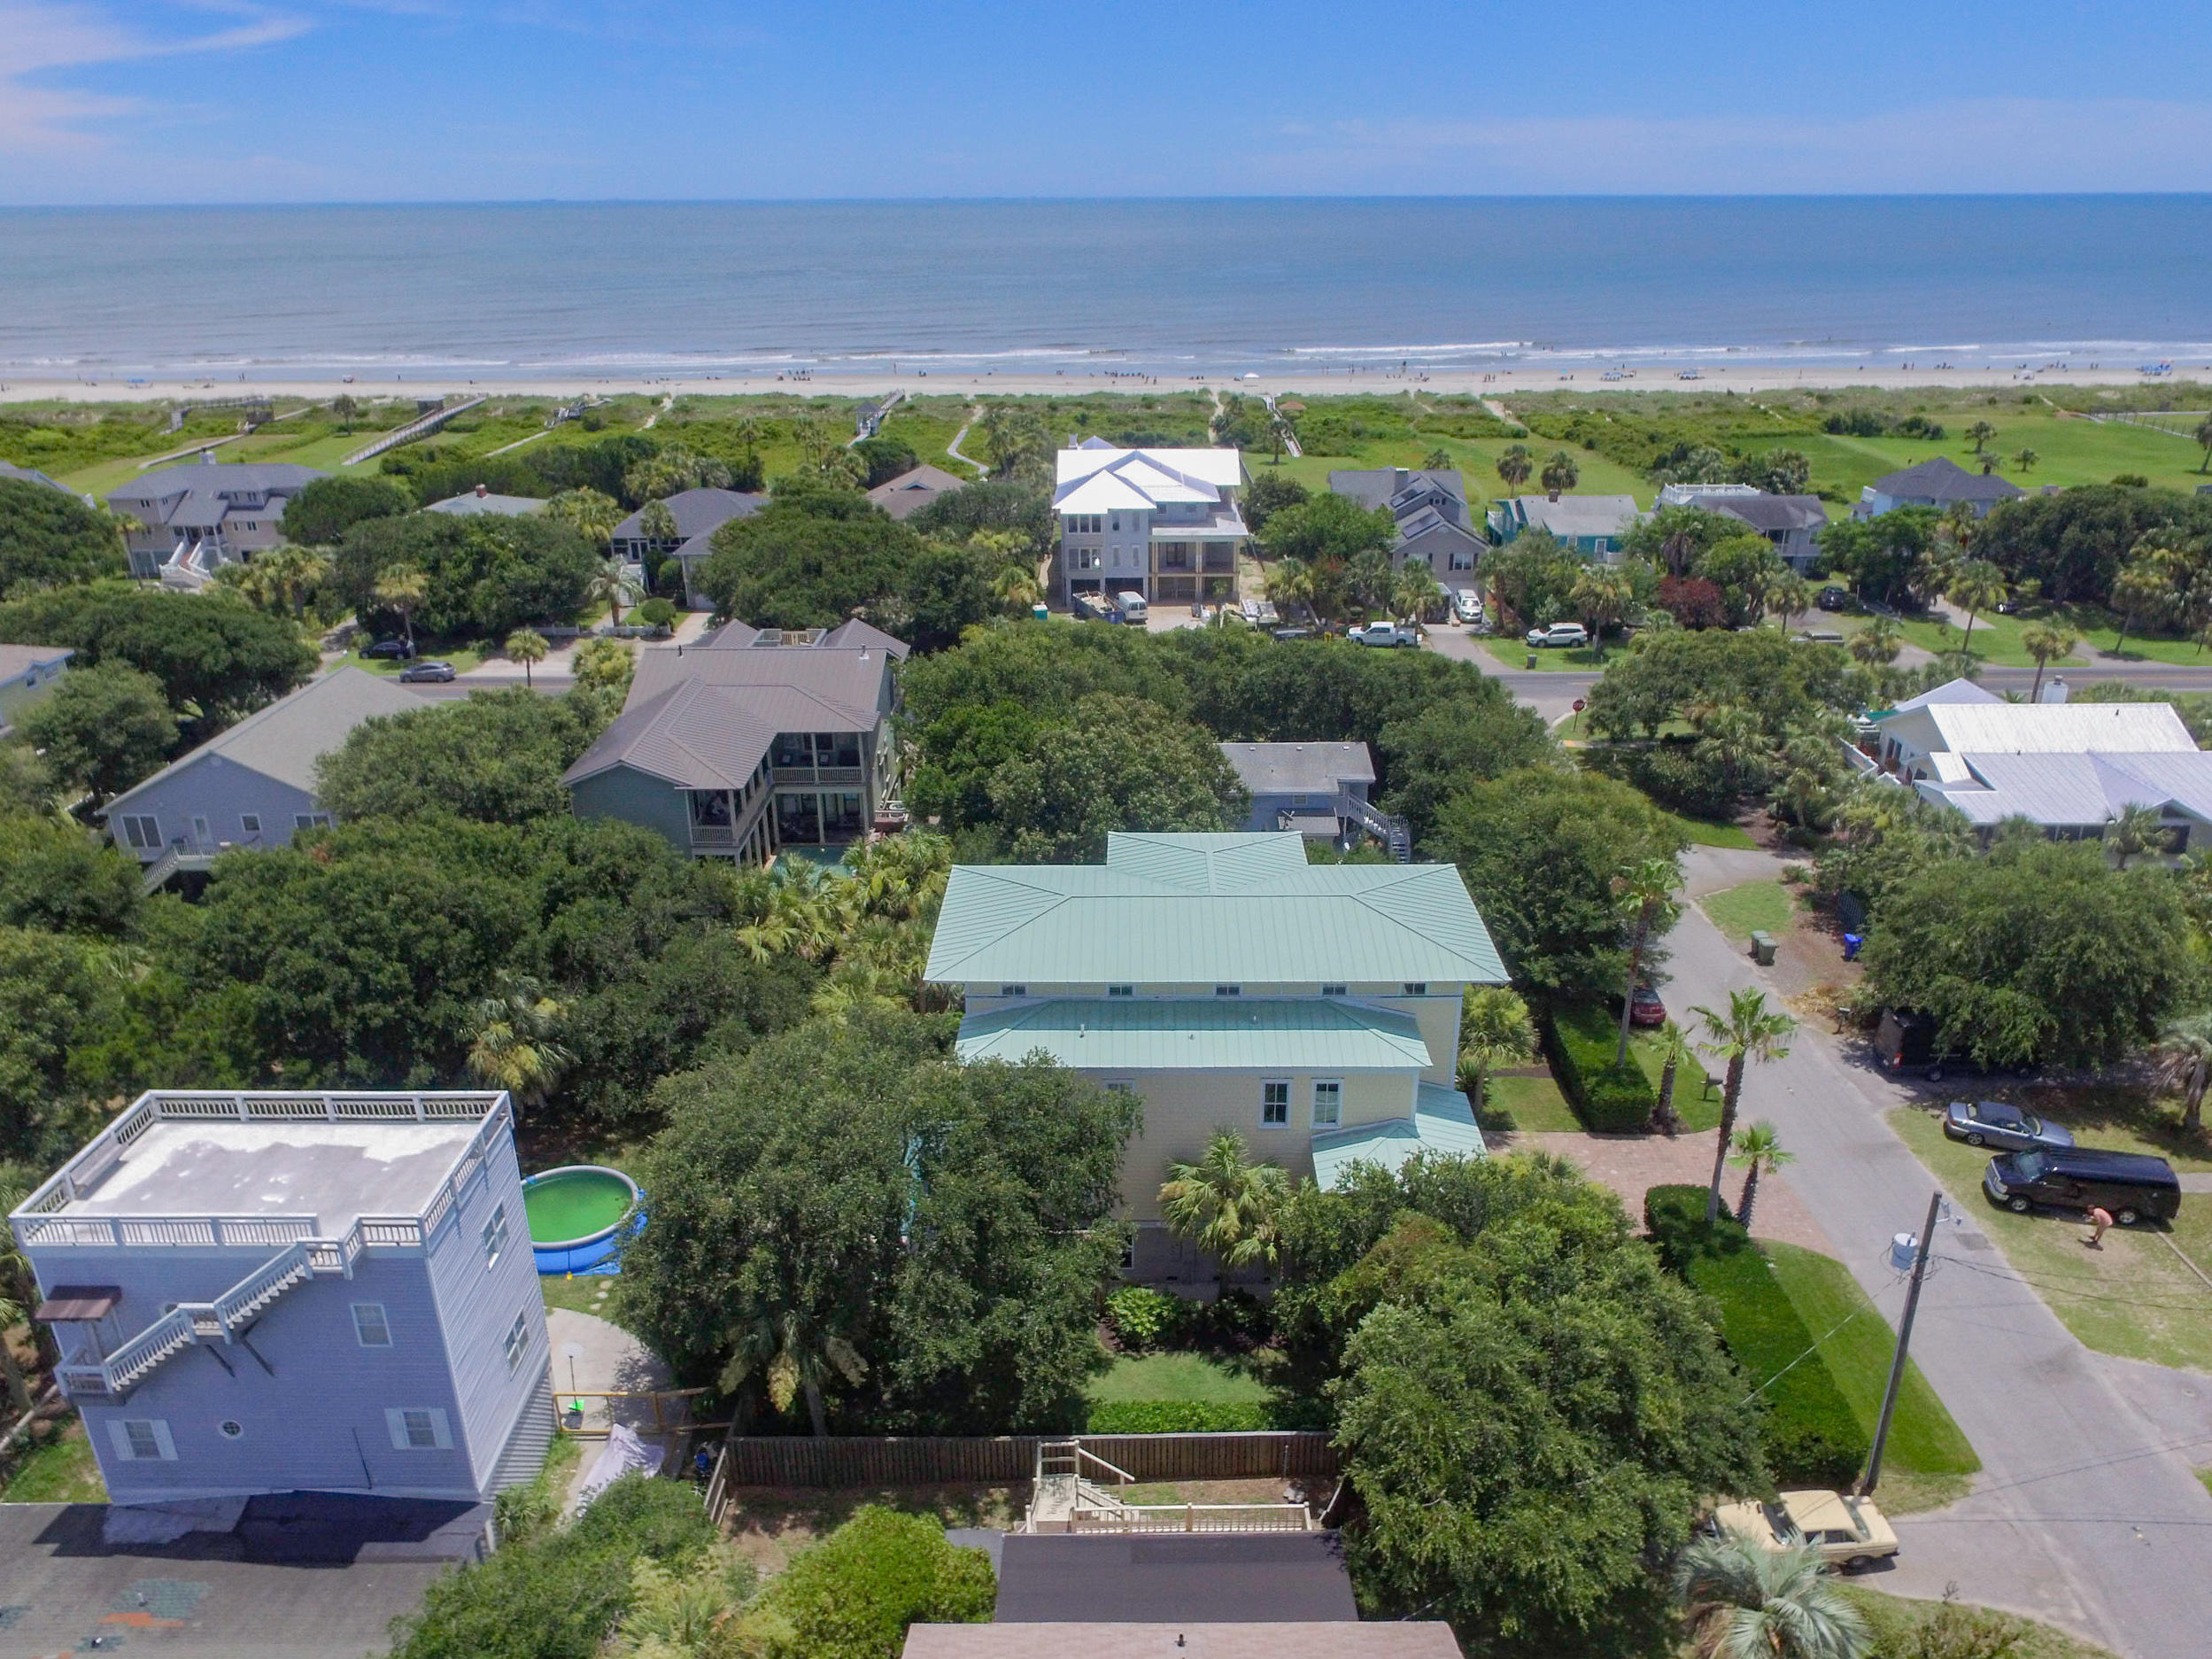 Photo of 4 28th Ave, Isle of Palms, SC 29451